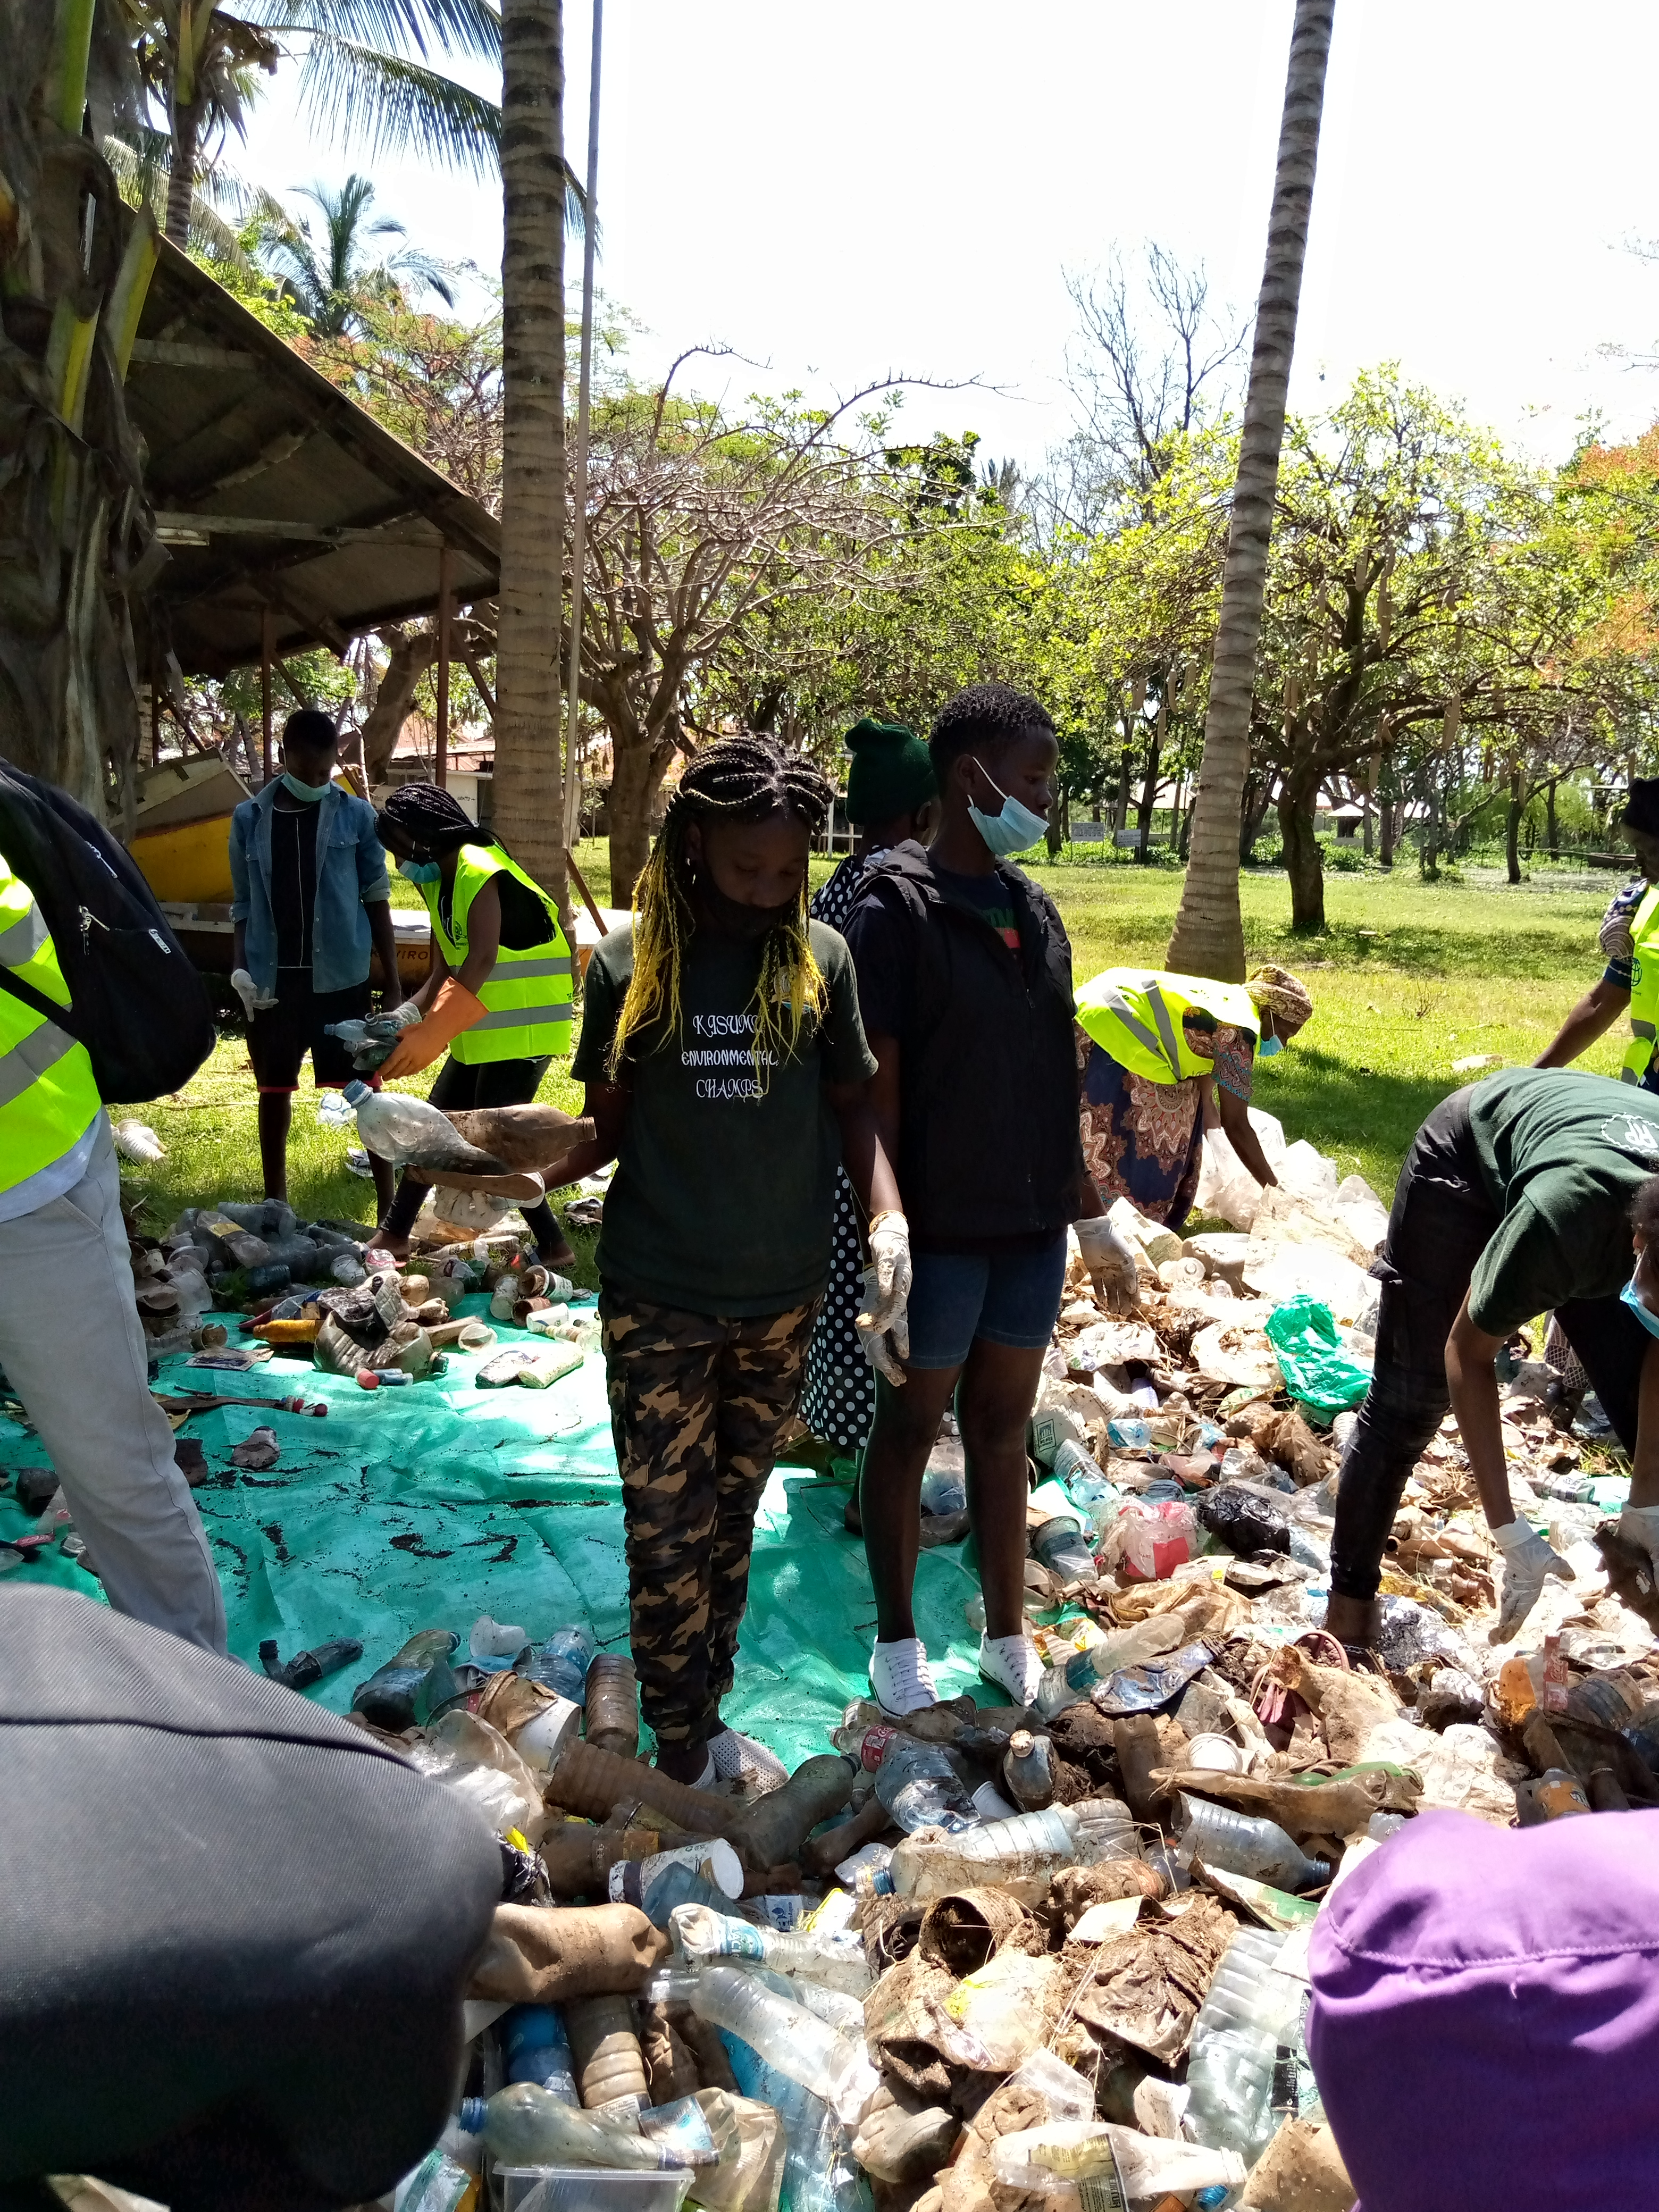 I usually organize clean ups and plastic collection then we sort sort the plastics and I collect some for recycling and others I give the recycling companies